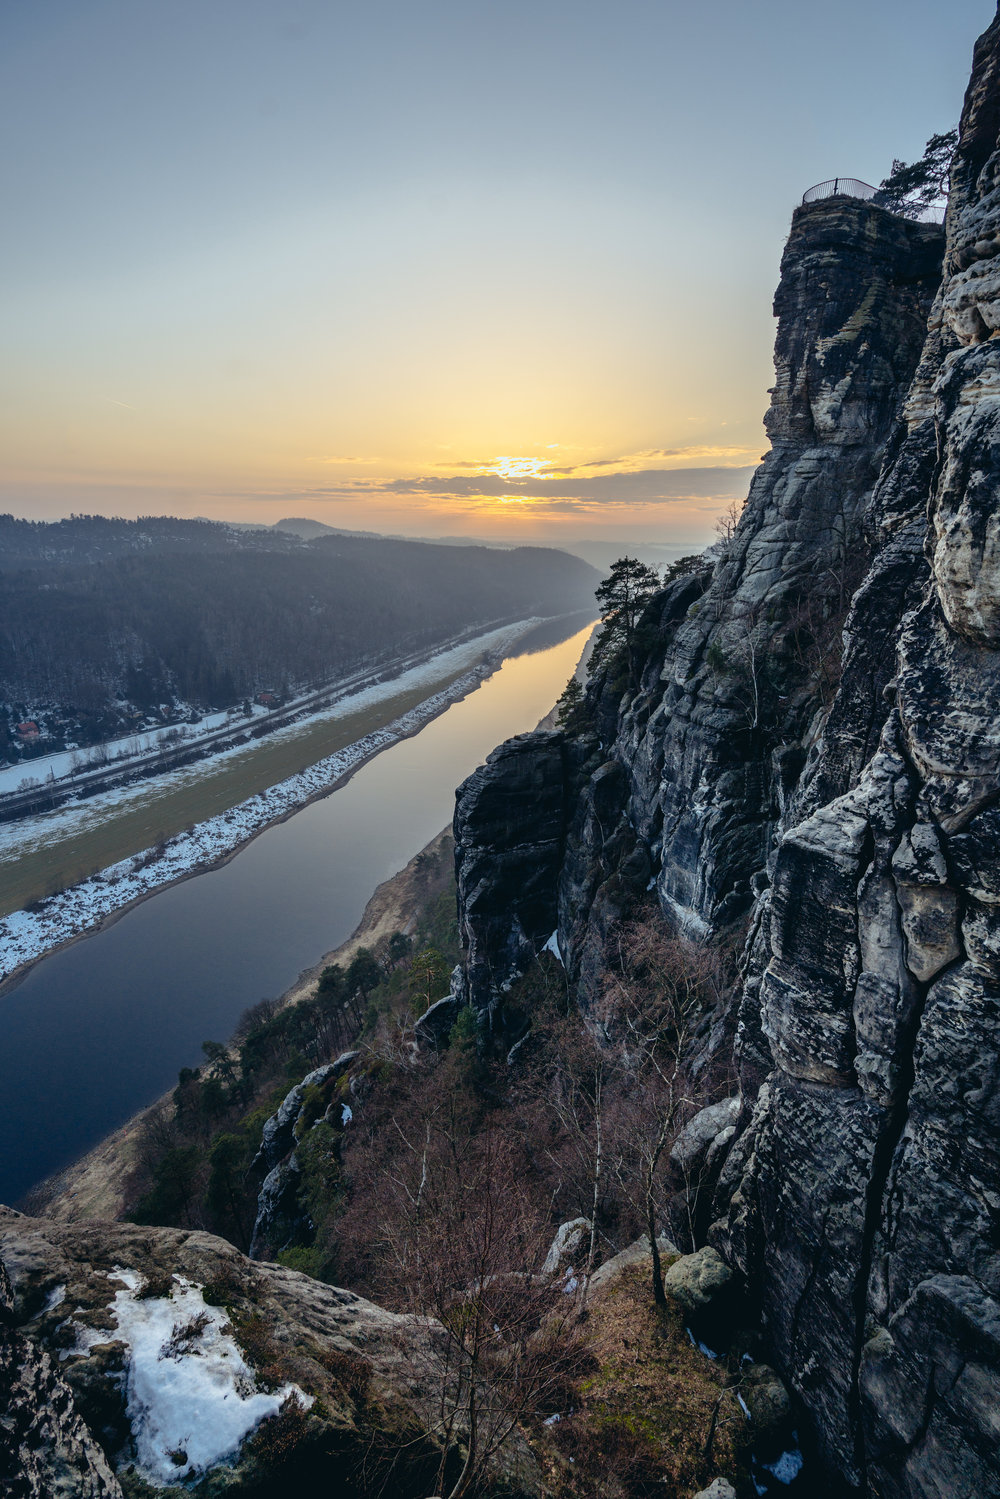 The sun sets in the distance, Saxon Switzerland